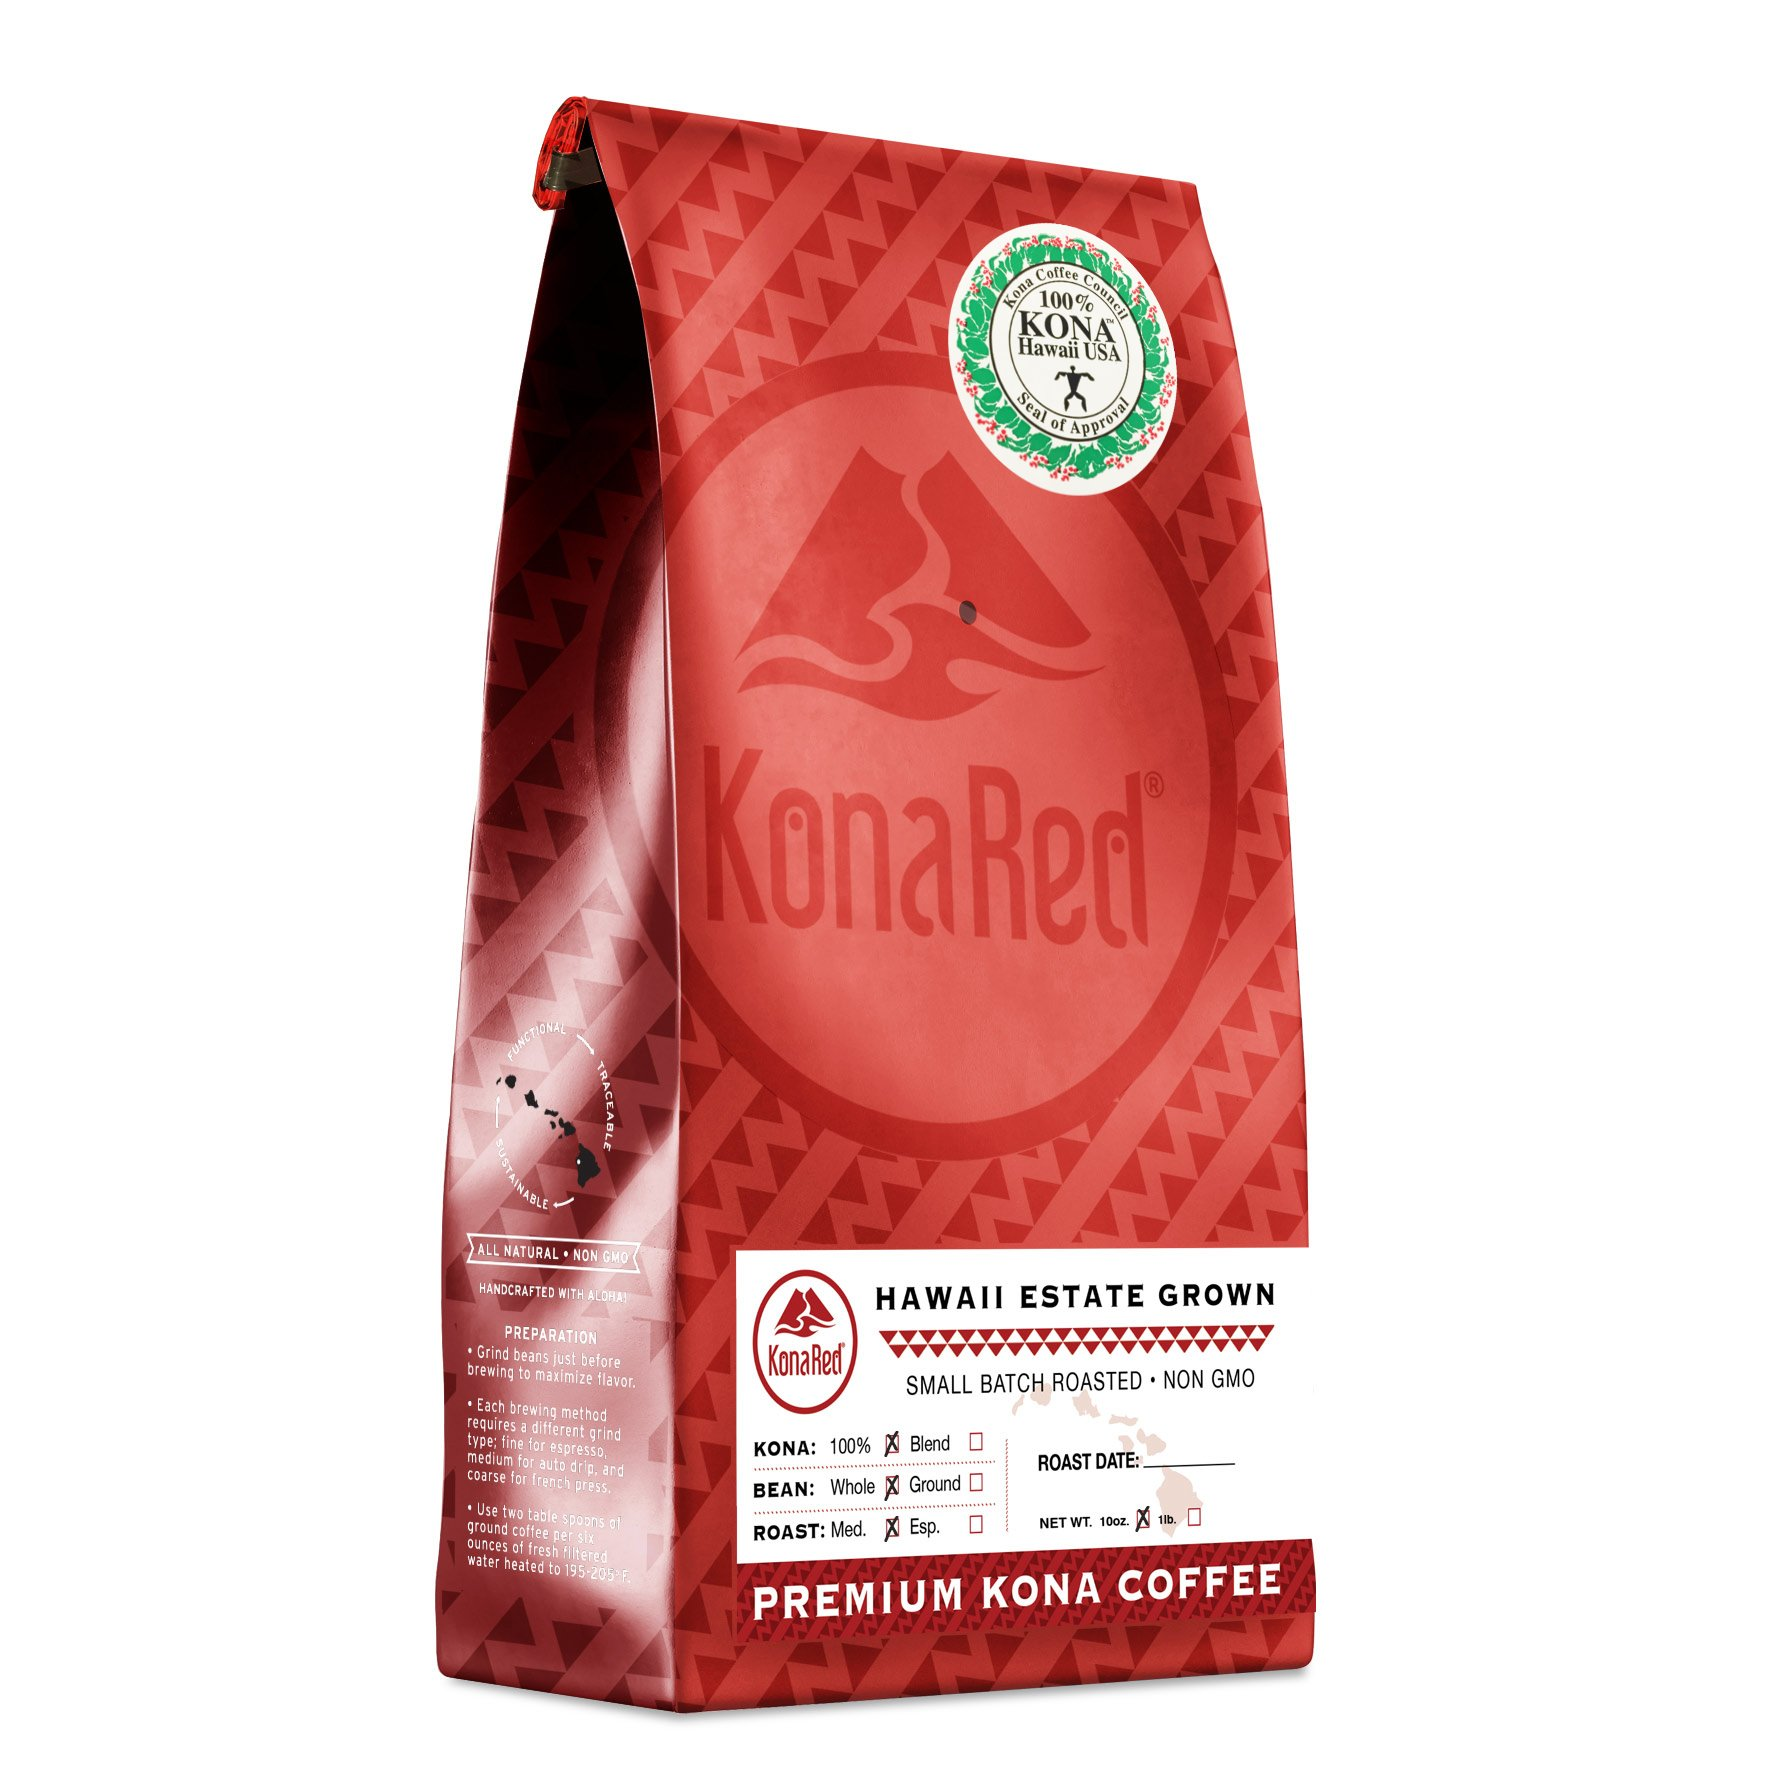 Timrow Traders Unroasted Green Coffee Beans High altitude grown Papua New Guinea 1 LB fully washed and sun dried coffee from Kimel Plantation